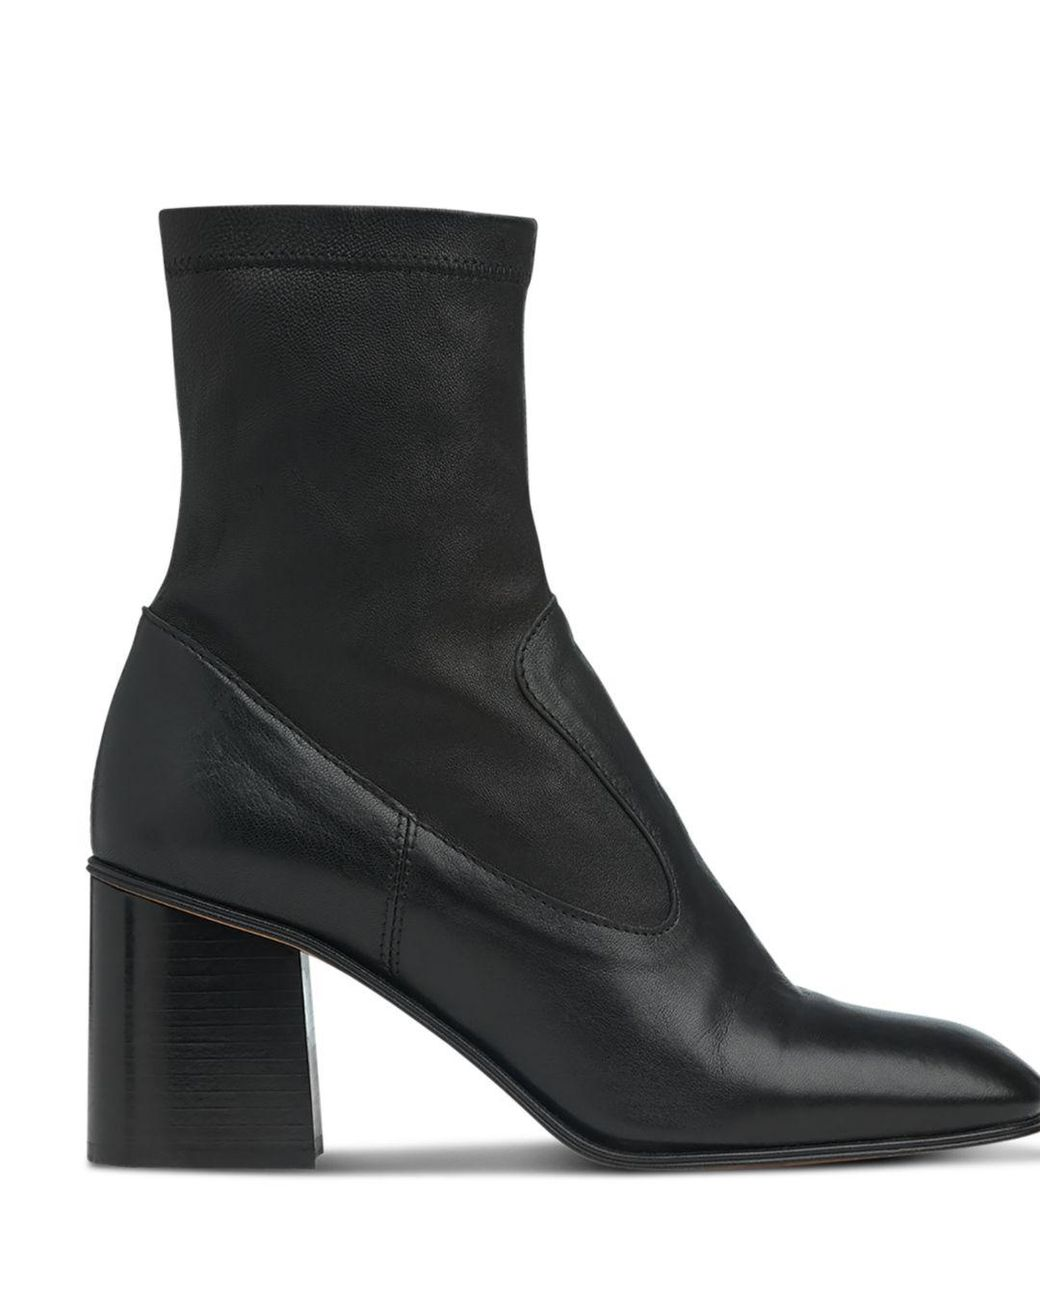 eed25bccf2c Black Women's Vittoria Square Toe Leather Boots